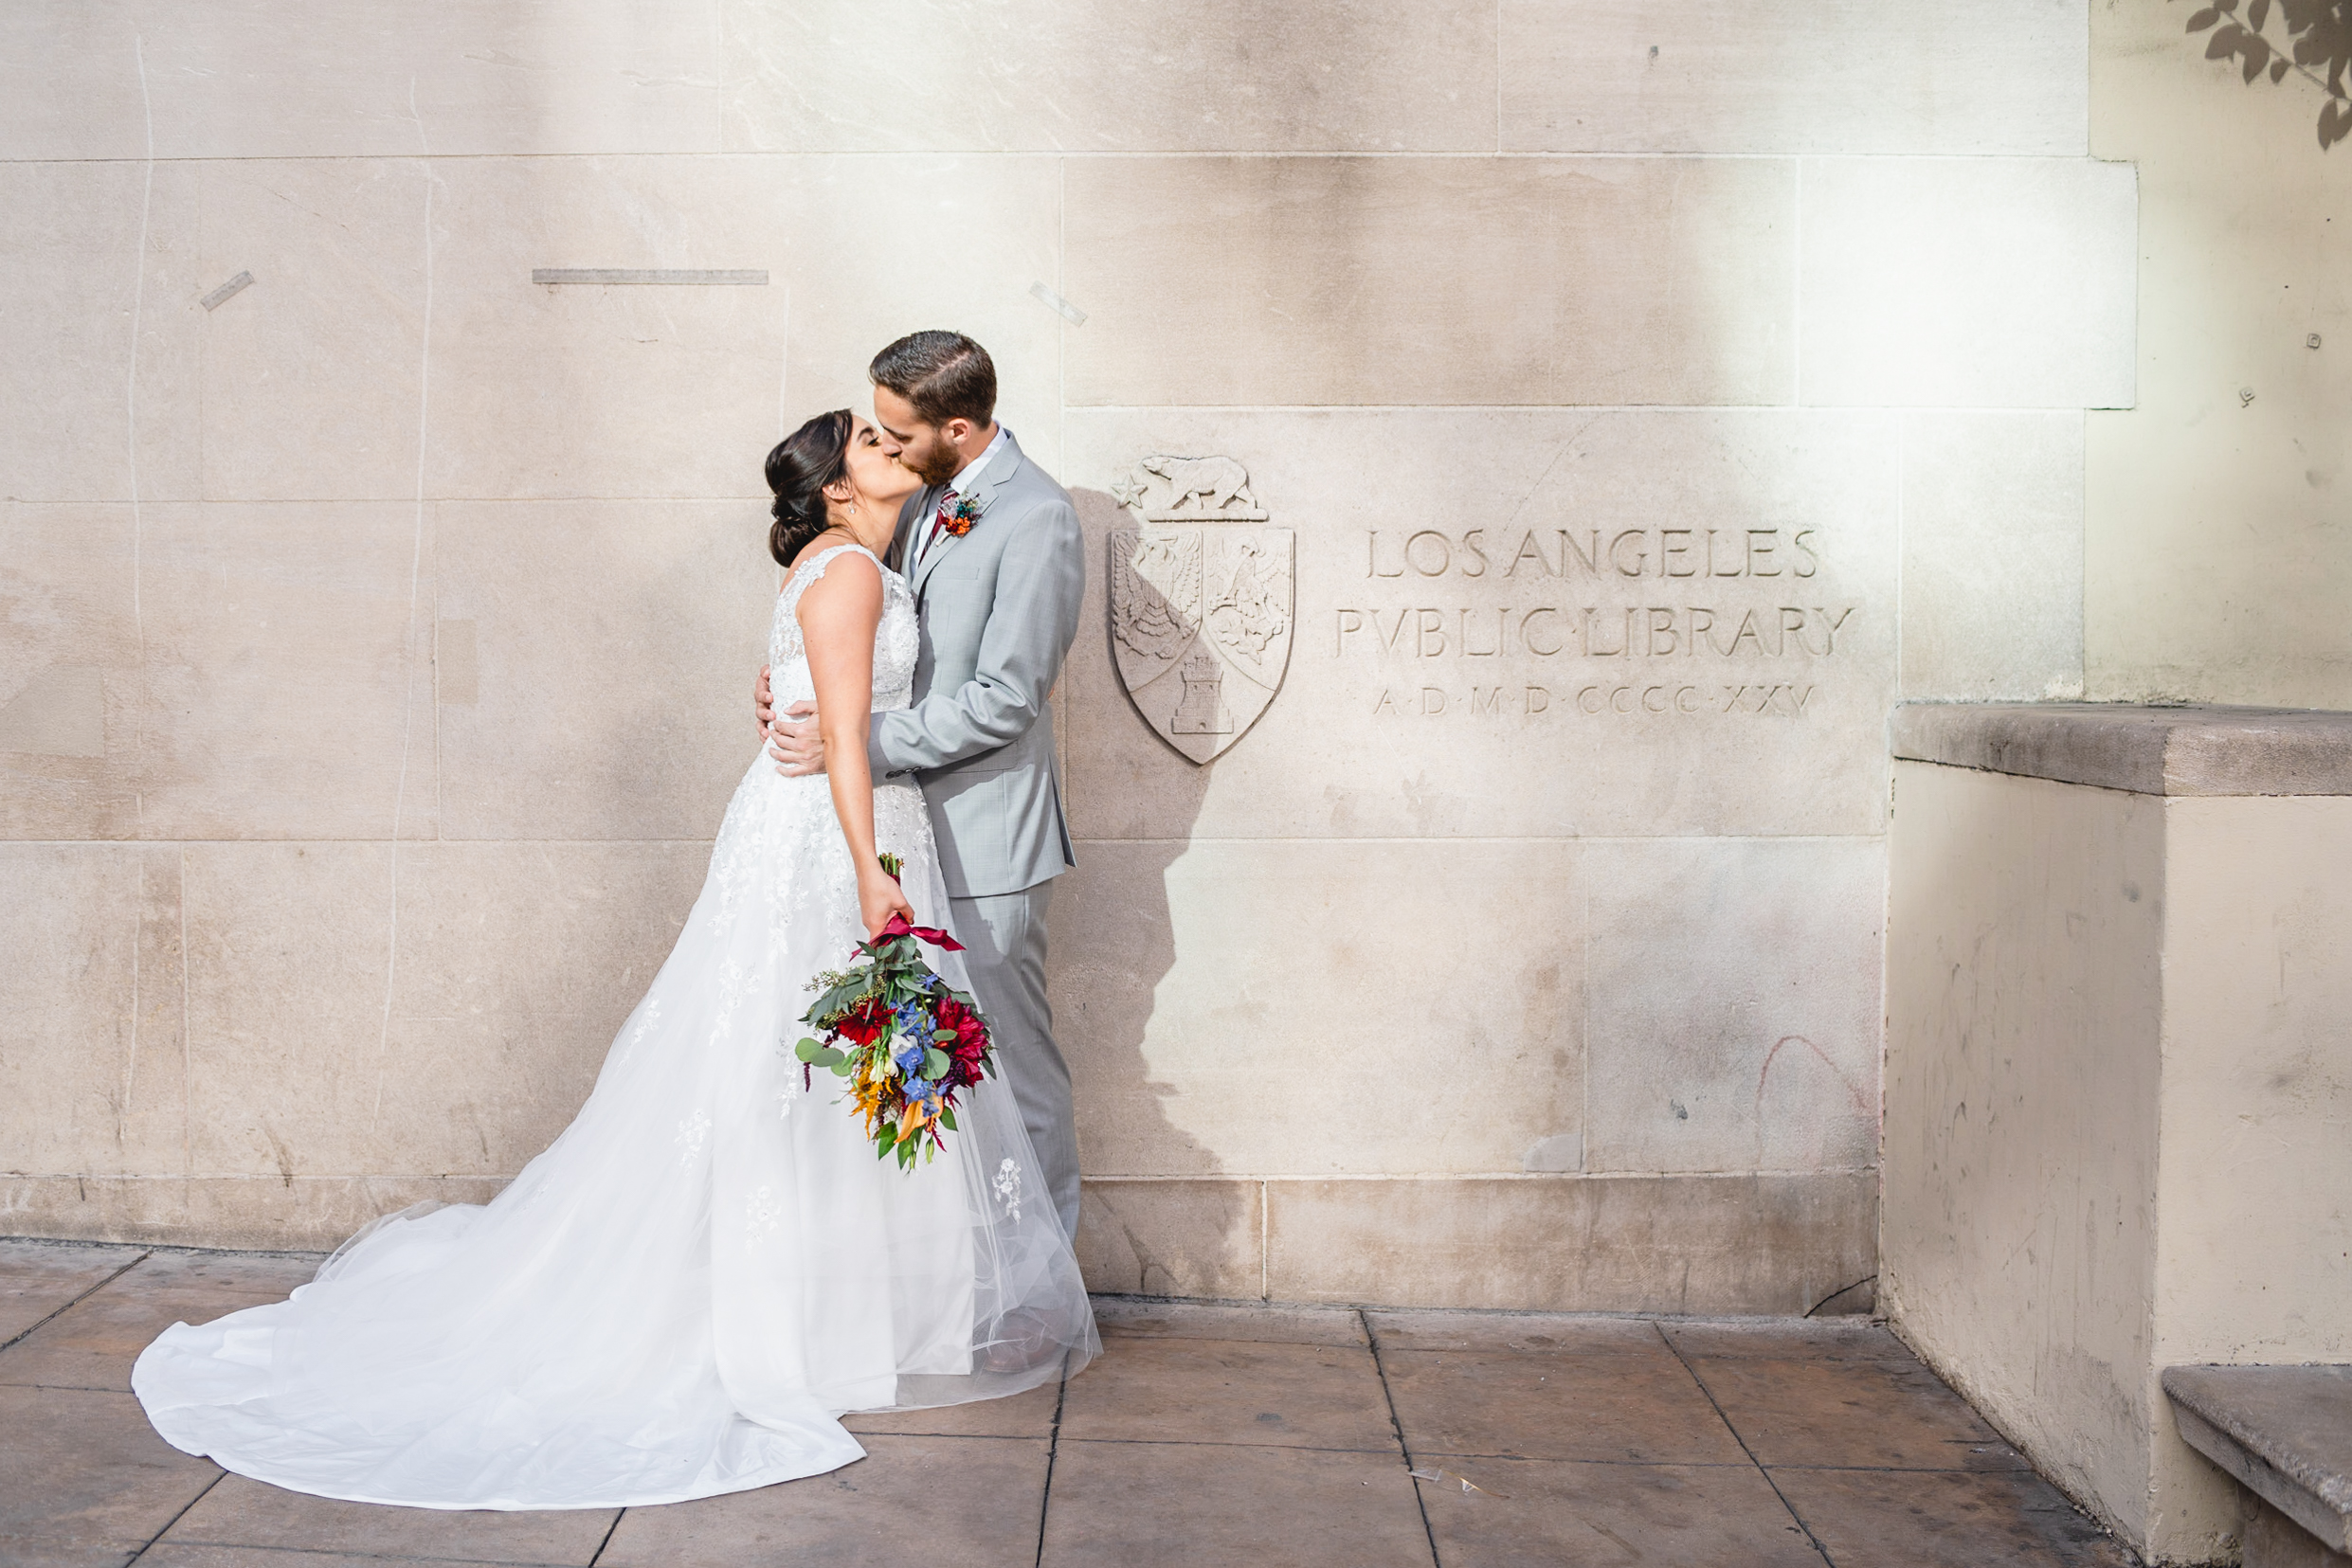 dtla-central-library-wedding-rebeccaylasotras-7.jpg